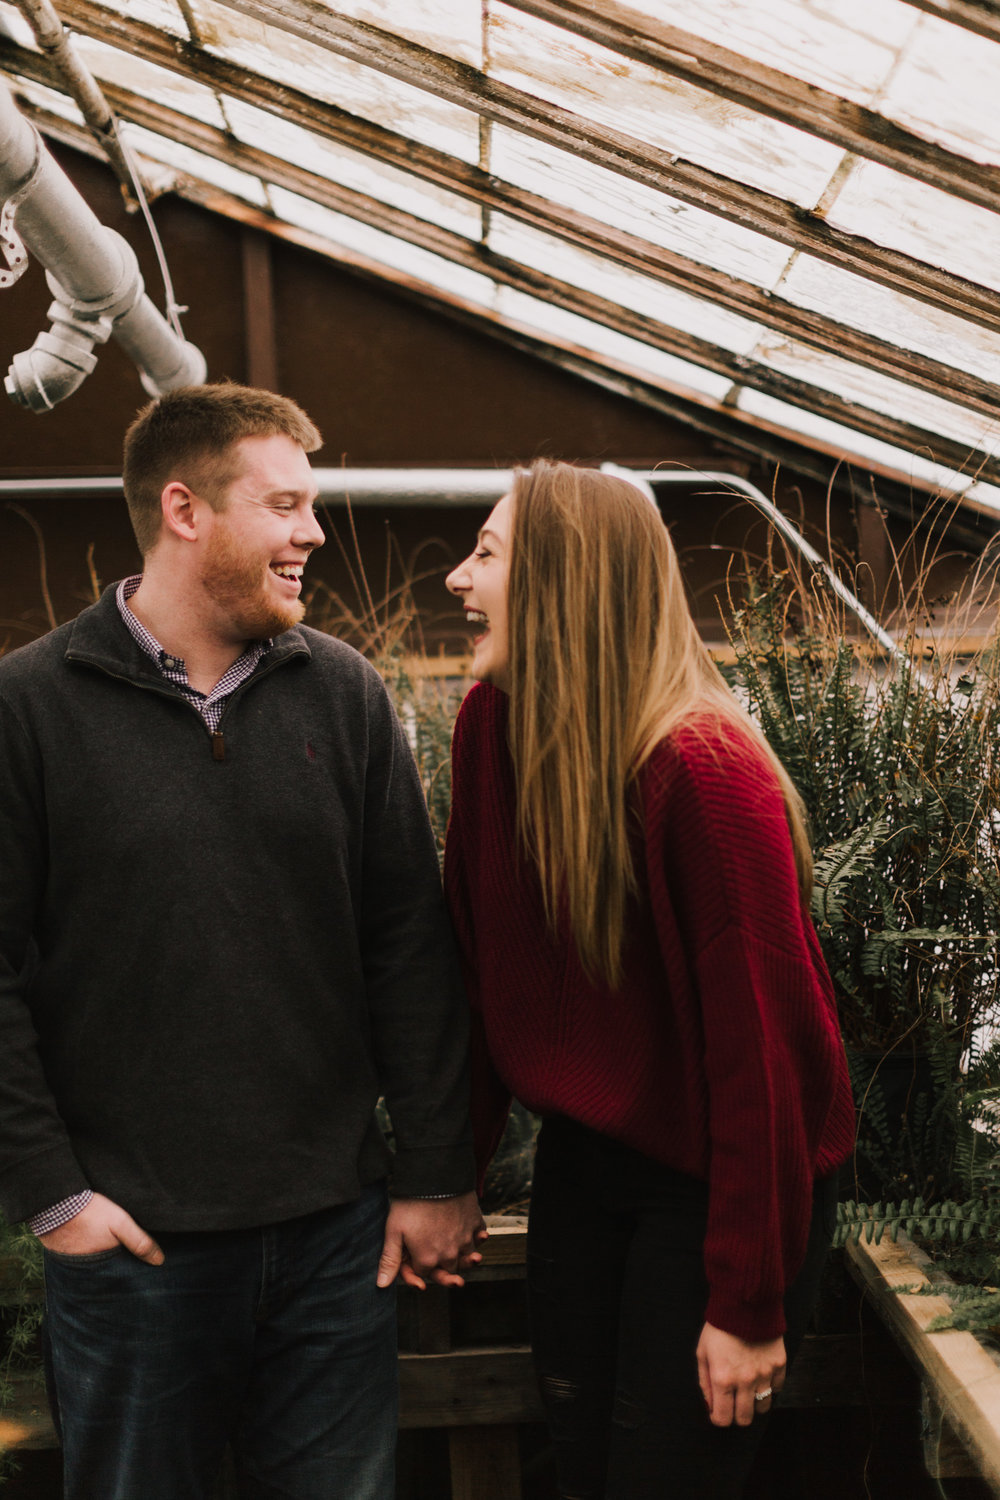 alyssa barletter photography johns greenhouse kansas city missouri brookside waldo engagement session winter-4.jpg